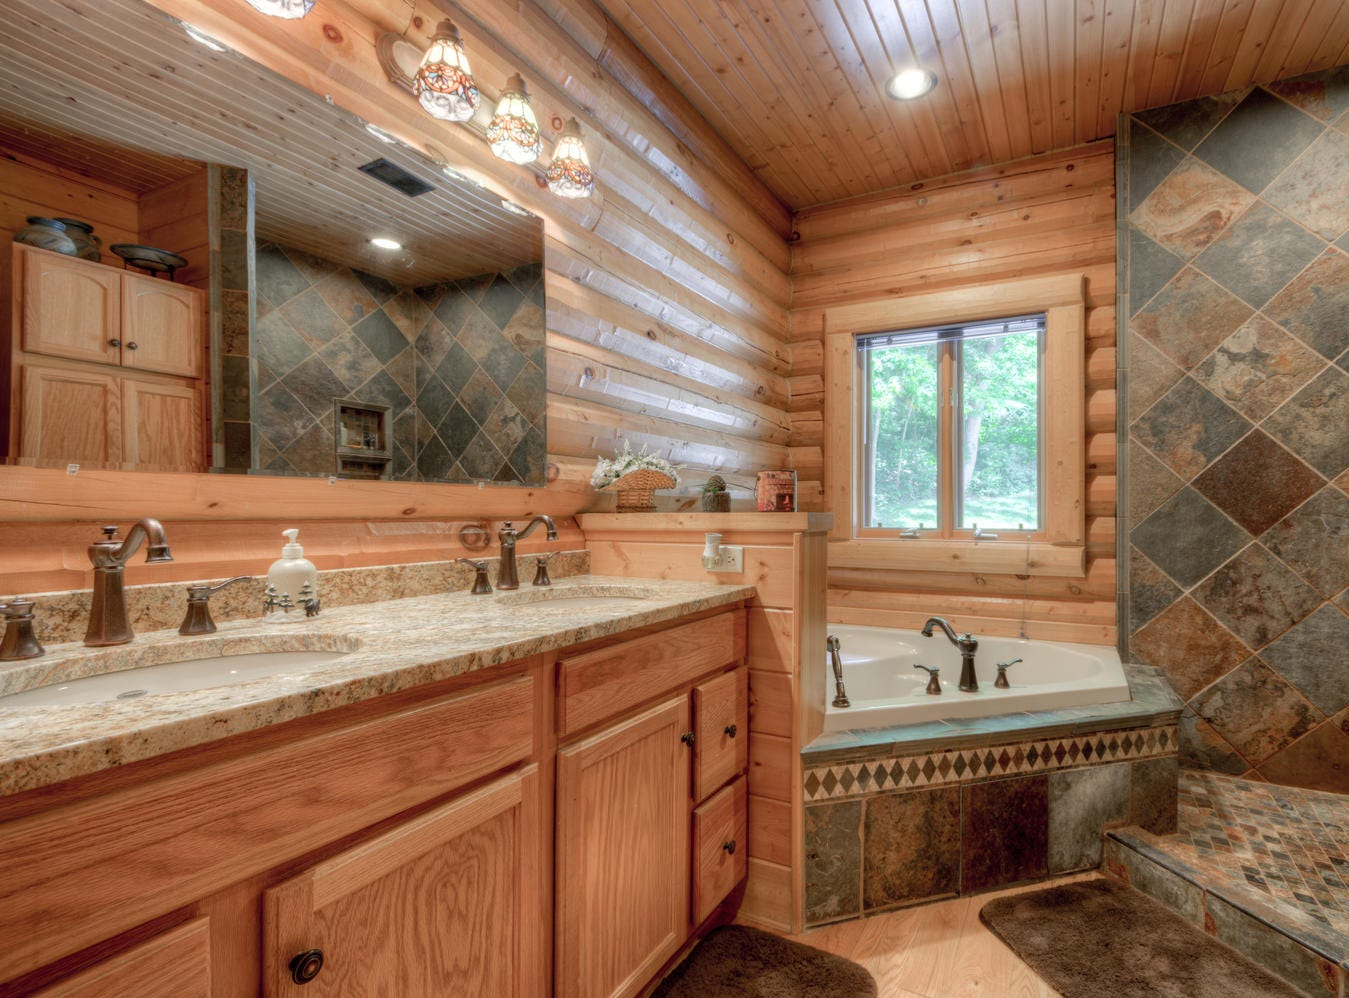 The en suite is finished with a double vanity, jetted tub and an open walk-in shower.